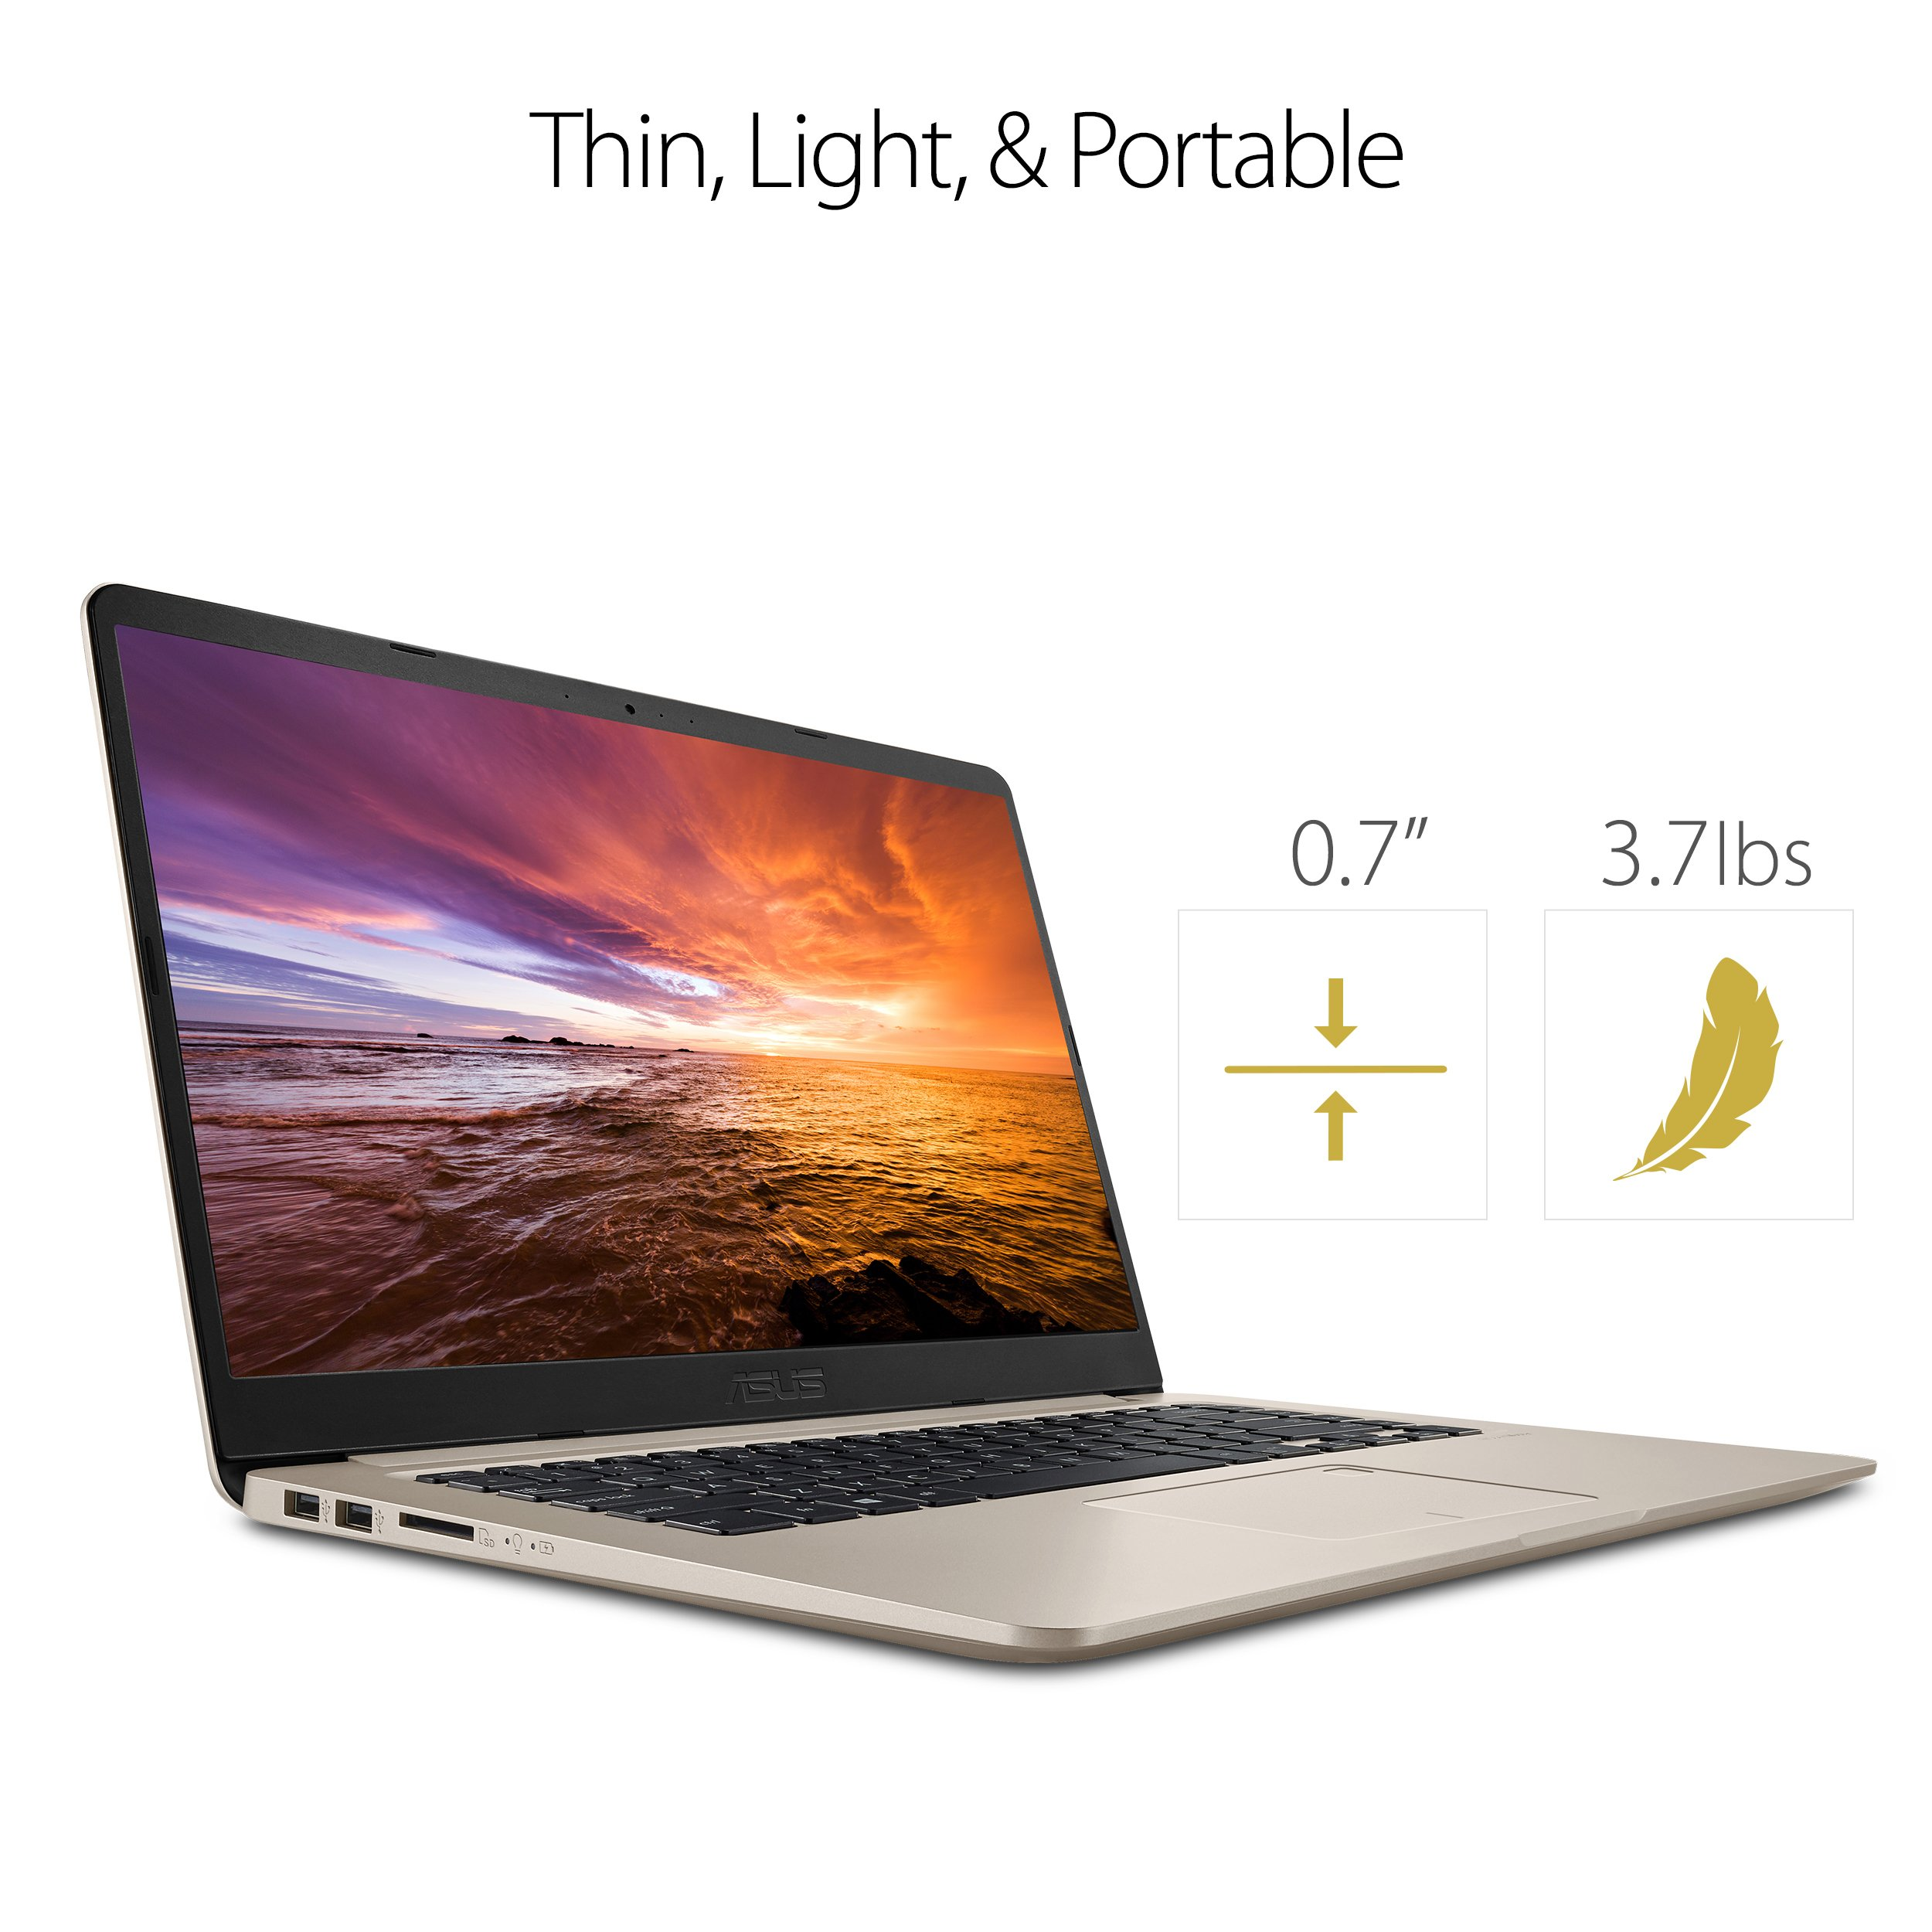 """ASUS VivoBook S Ultra Thin and Portable Laptop, Intel Core i7-8550U Processor, 8GB DDR4 RAM, 128GB SSD+1TB HDD, 15.6"""" FHD WideView Display, ASUS NanoEdge Bezel, S510UA-DS71 by ASUS (Image #3)"""